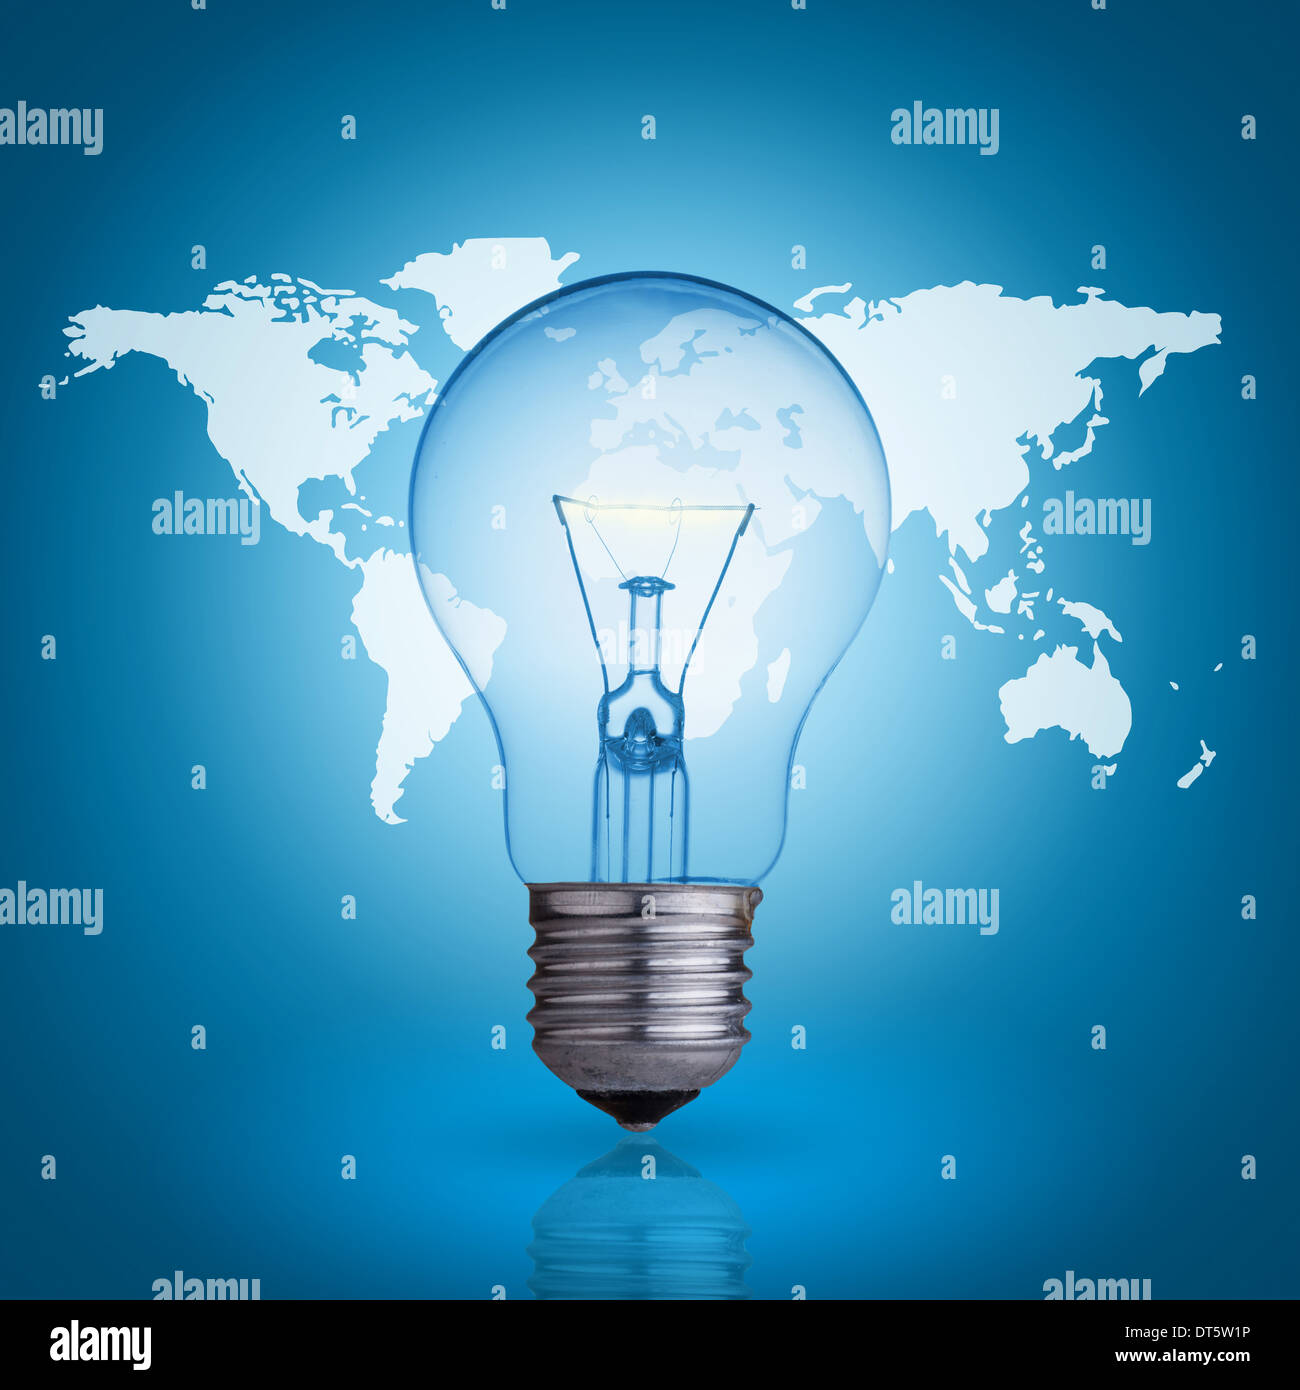 Light bulb on blue background world map stock photo 66512258 alamy light bulb on blue background world map gumiabroncs Image collections